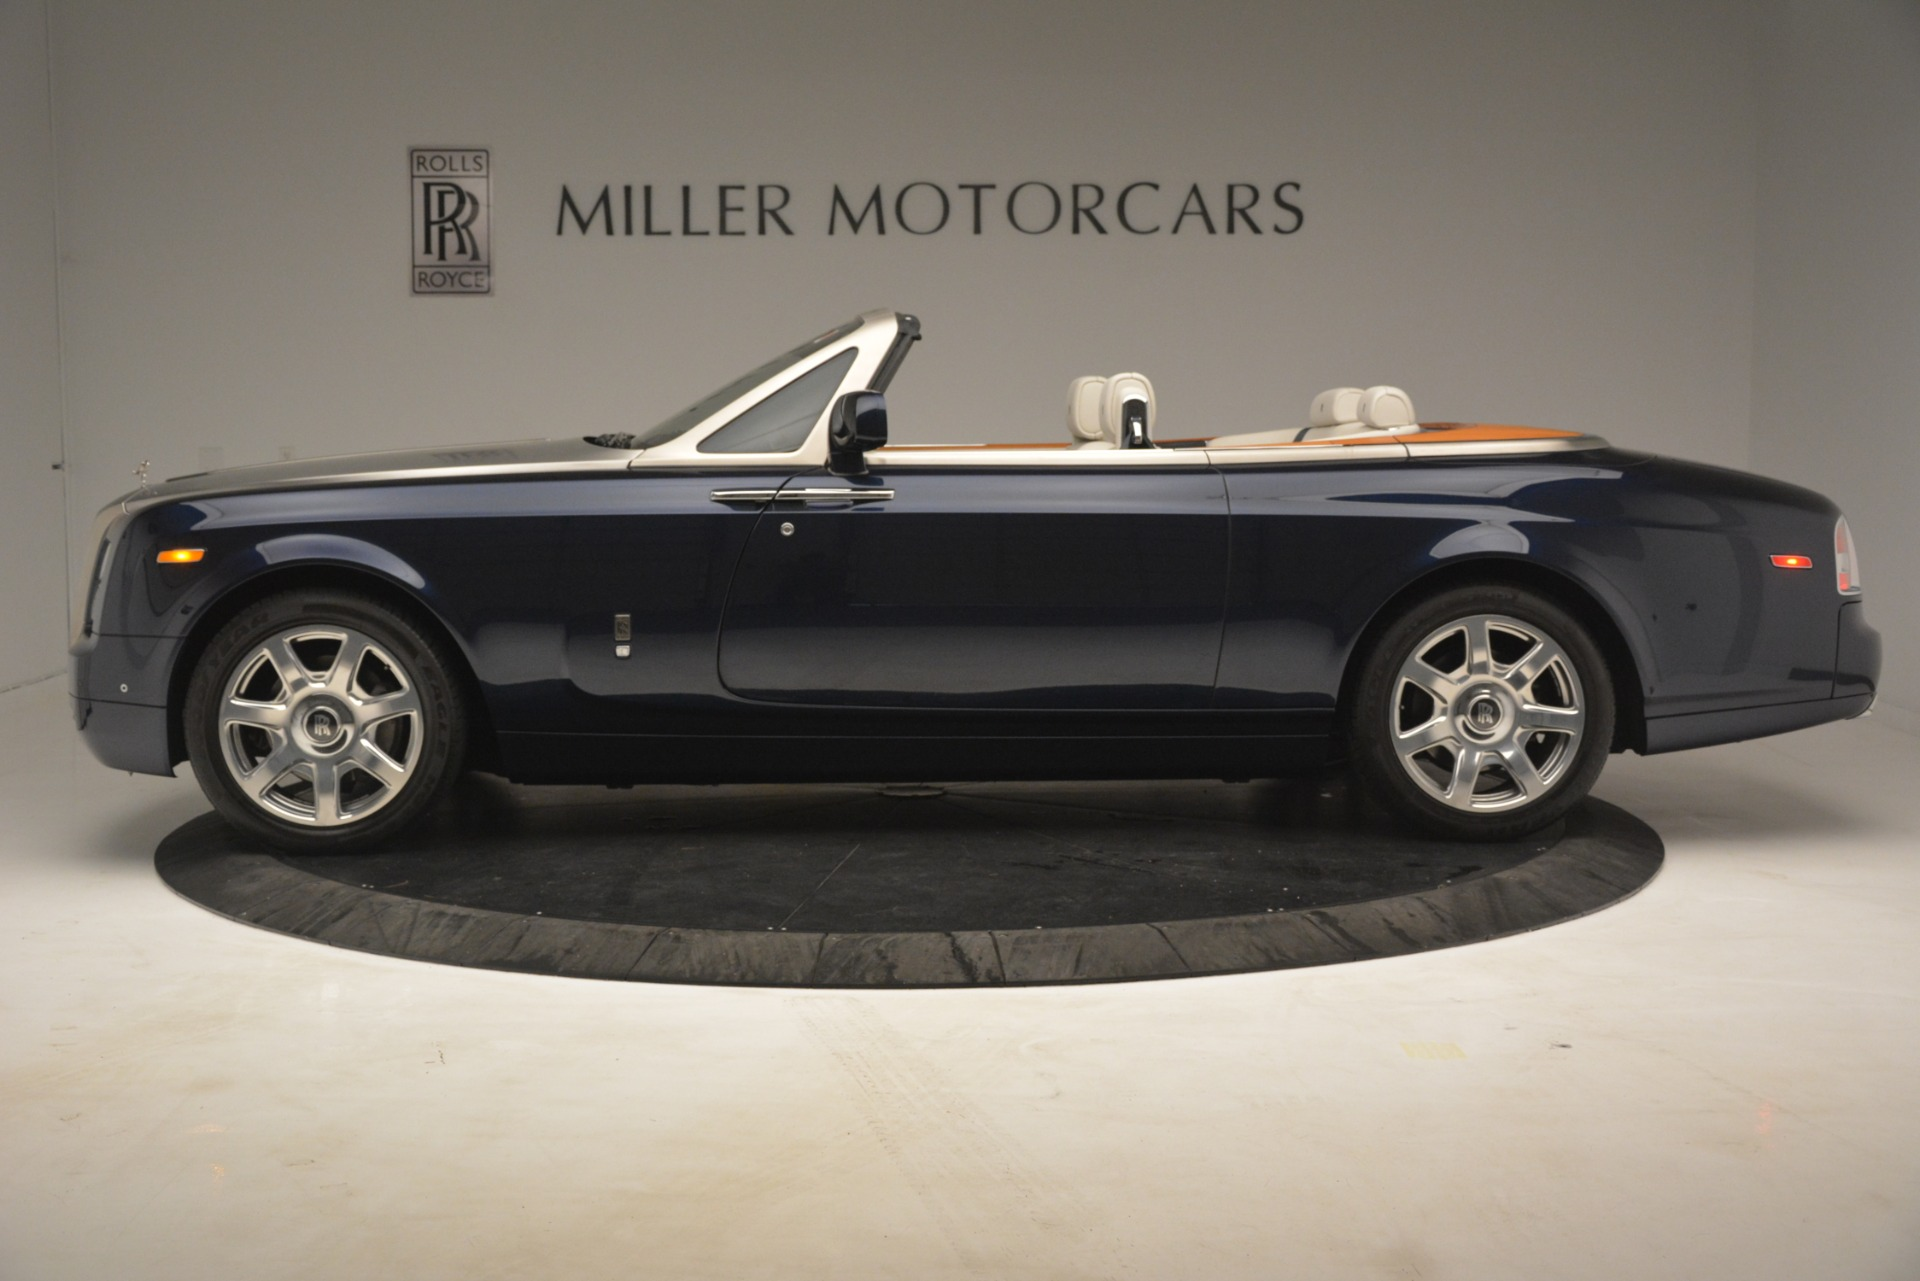 Used 2013 Rolls-Royce Phantom Drophead Coupe  For Sale In Westport, CT 2999_p4